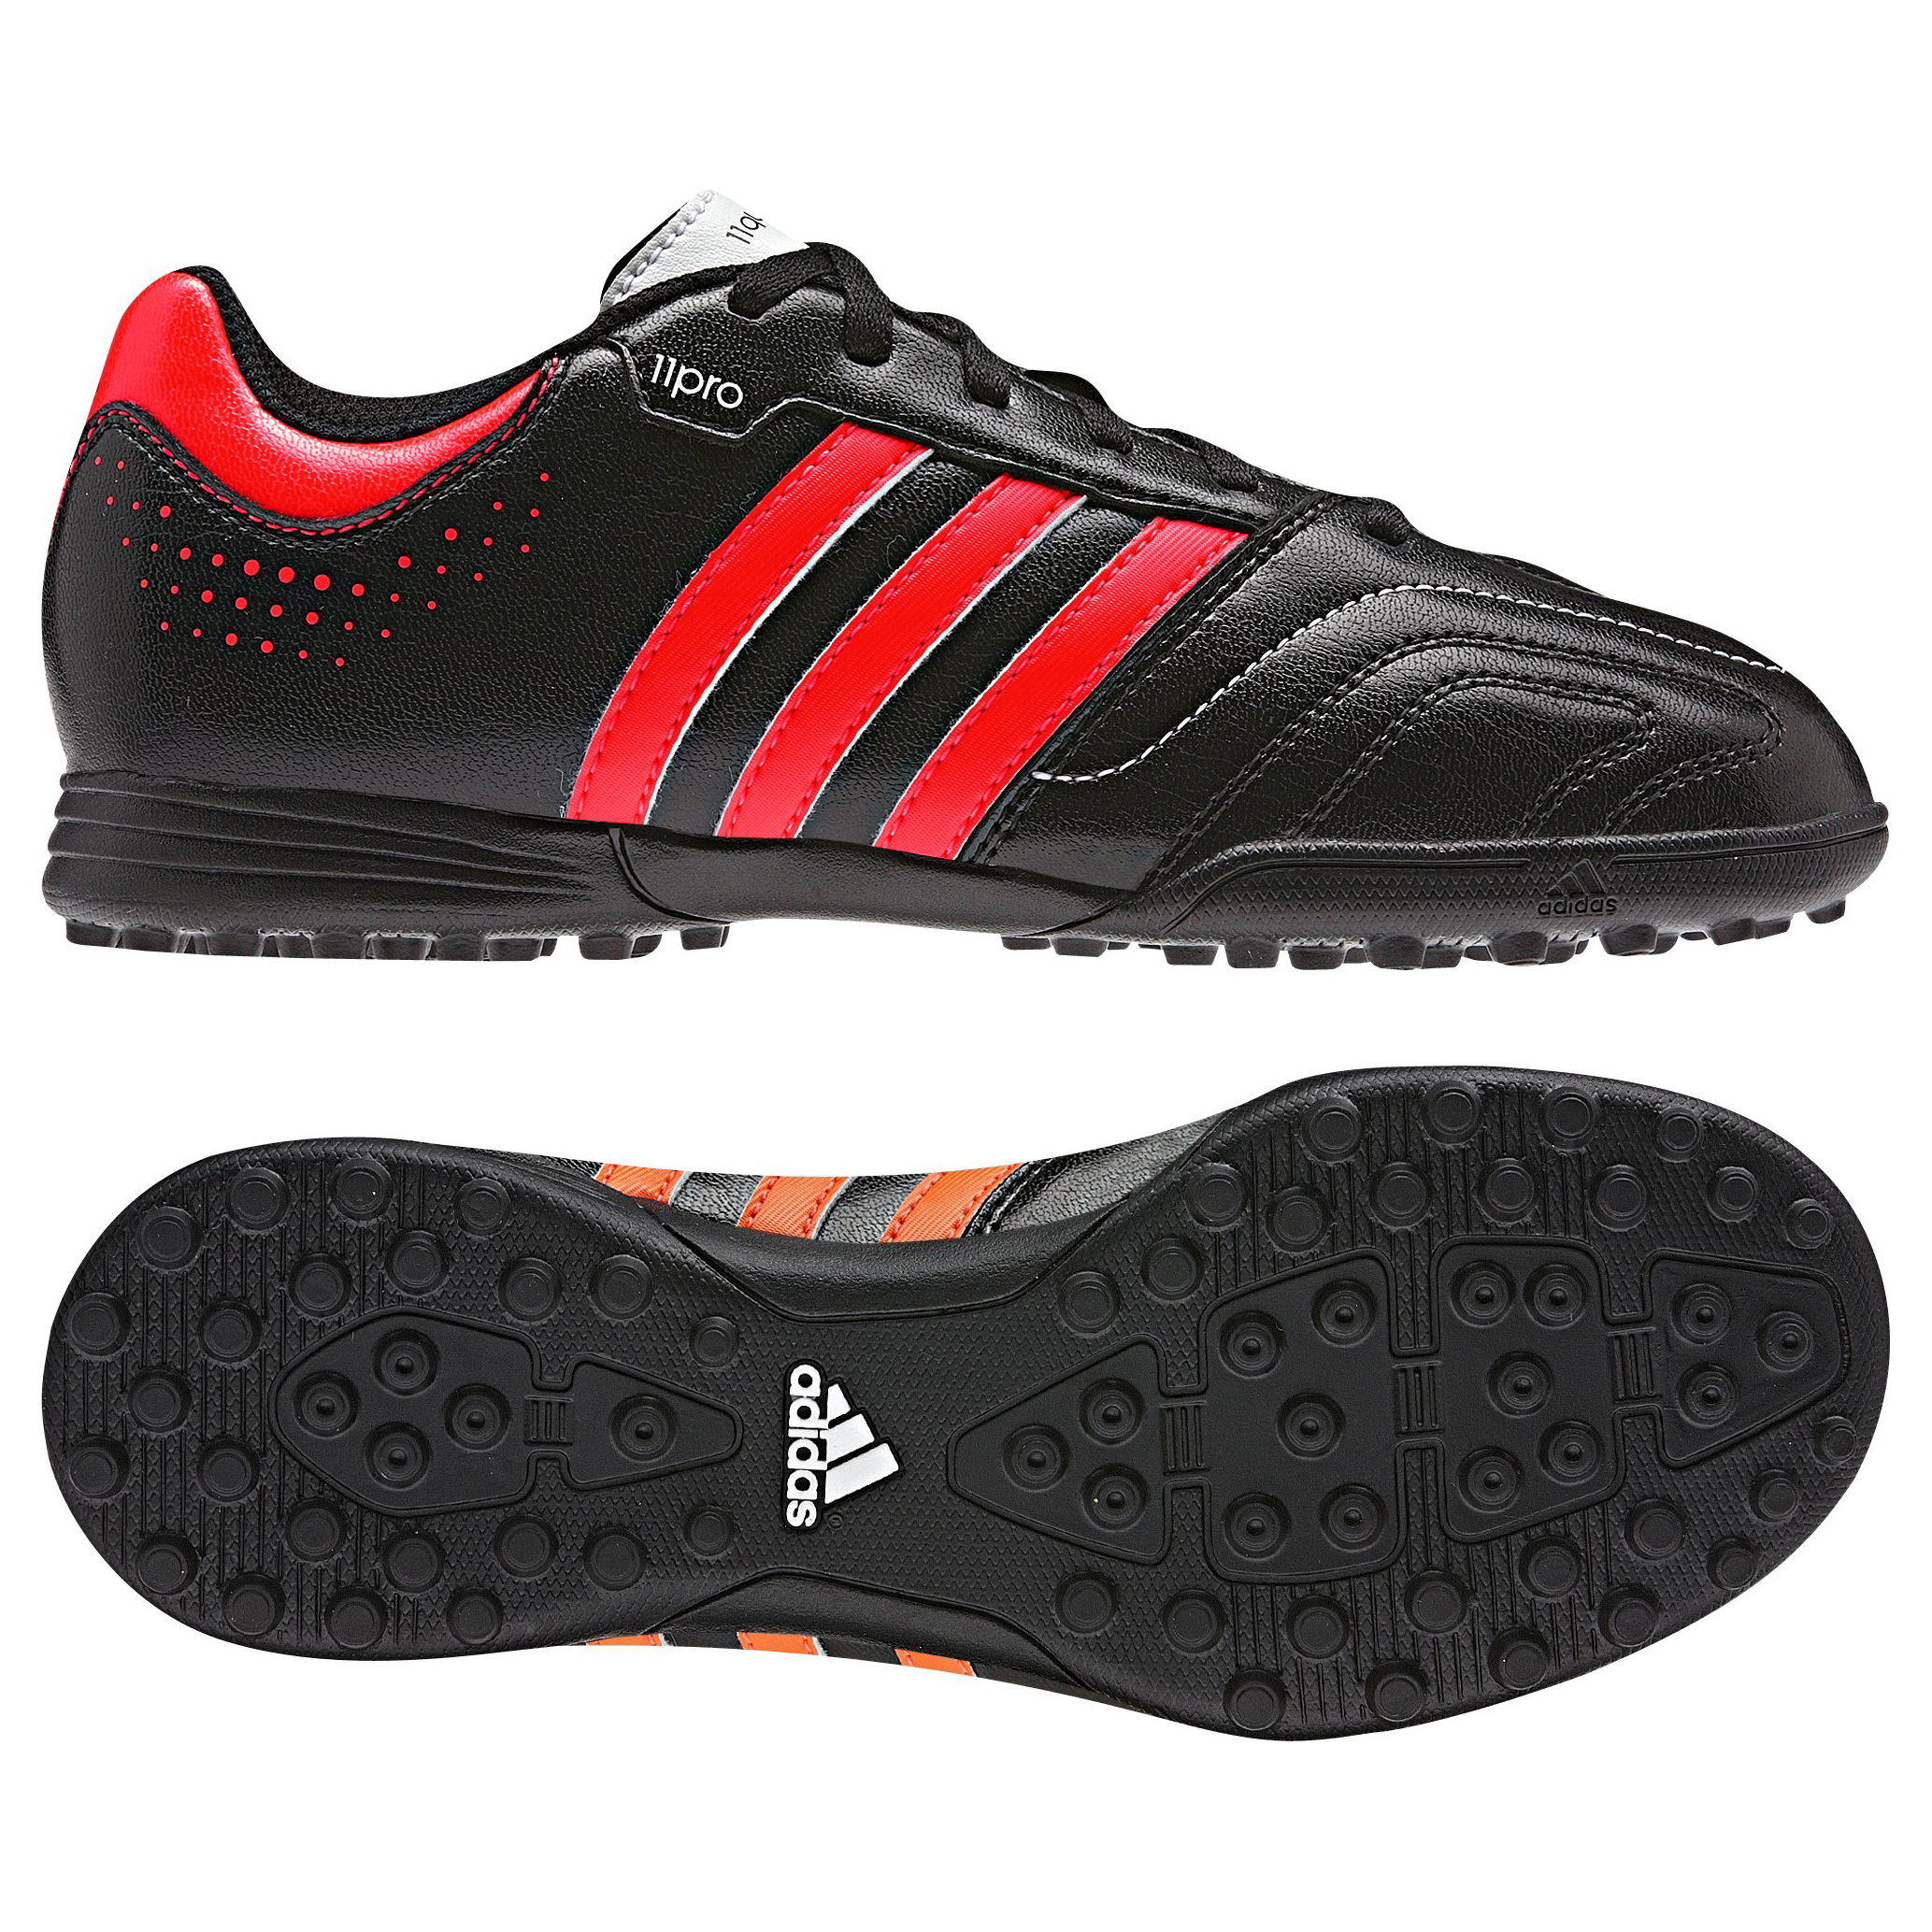 Adidas 11Questra TRX Astro Turf Trainers - Black/Infrared/Running White - Kids